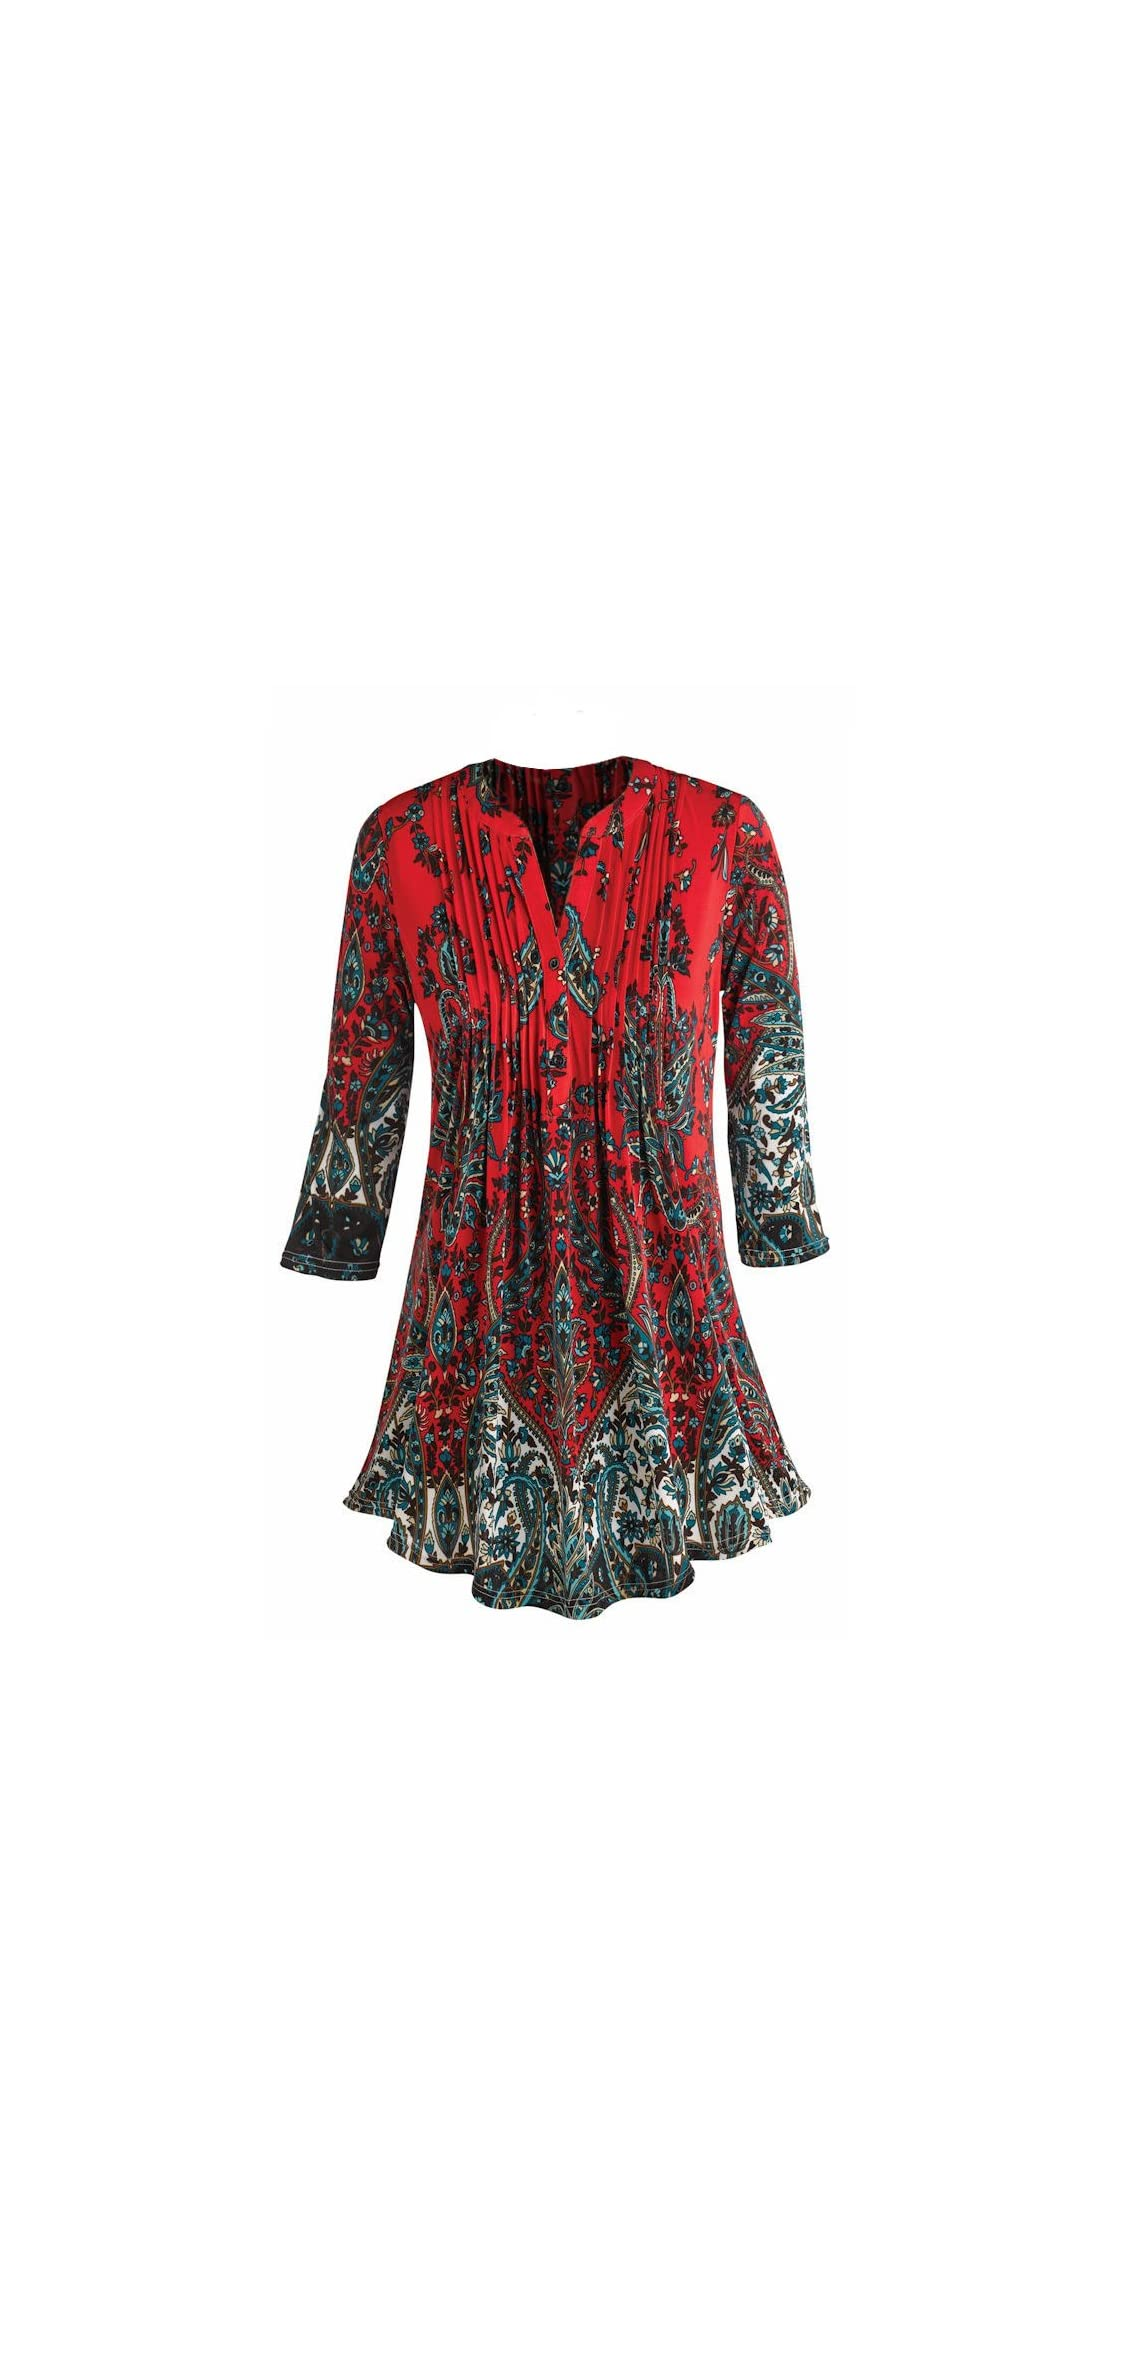 Women's Pleated Paisley Tunic Top -/ Sleeve